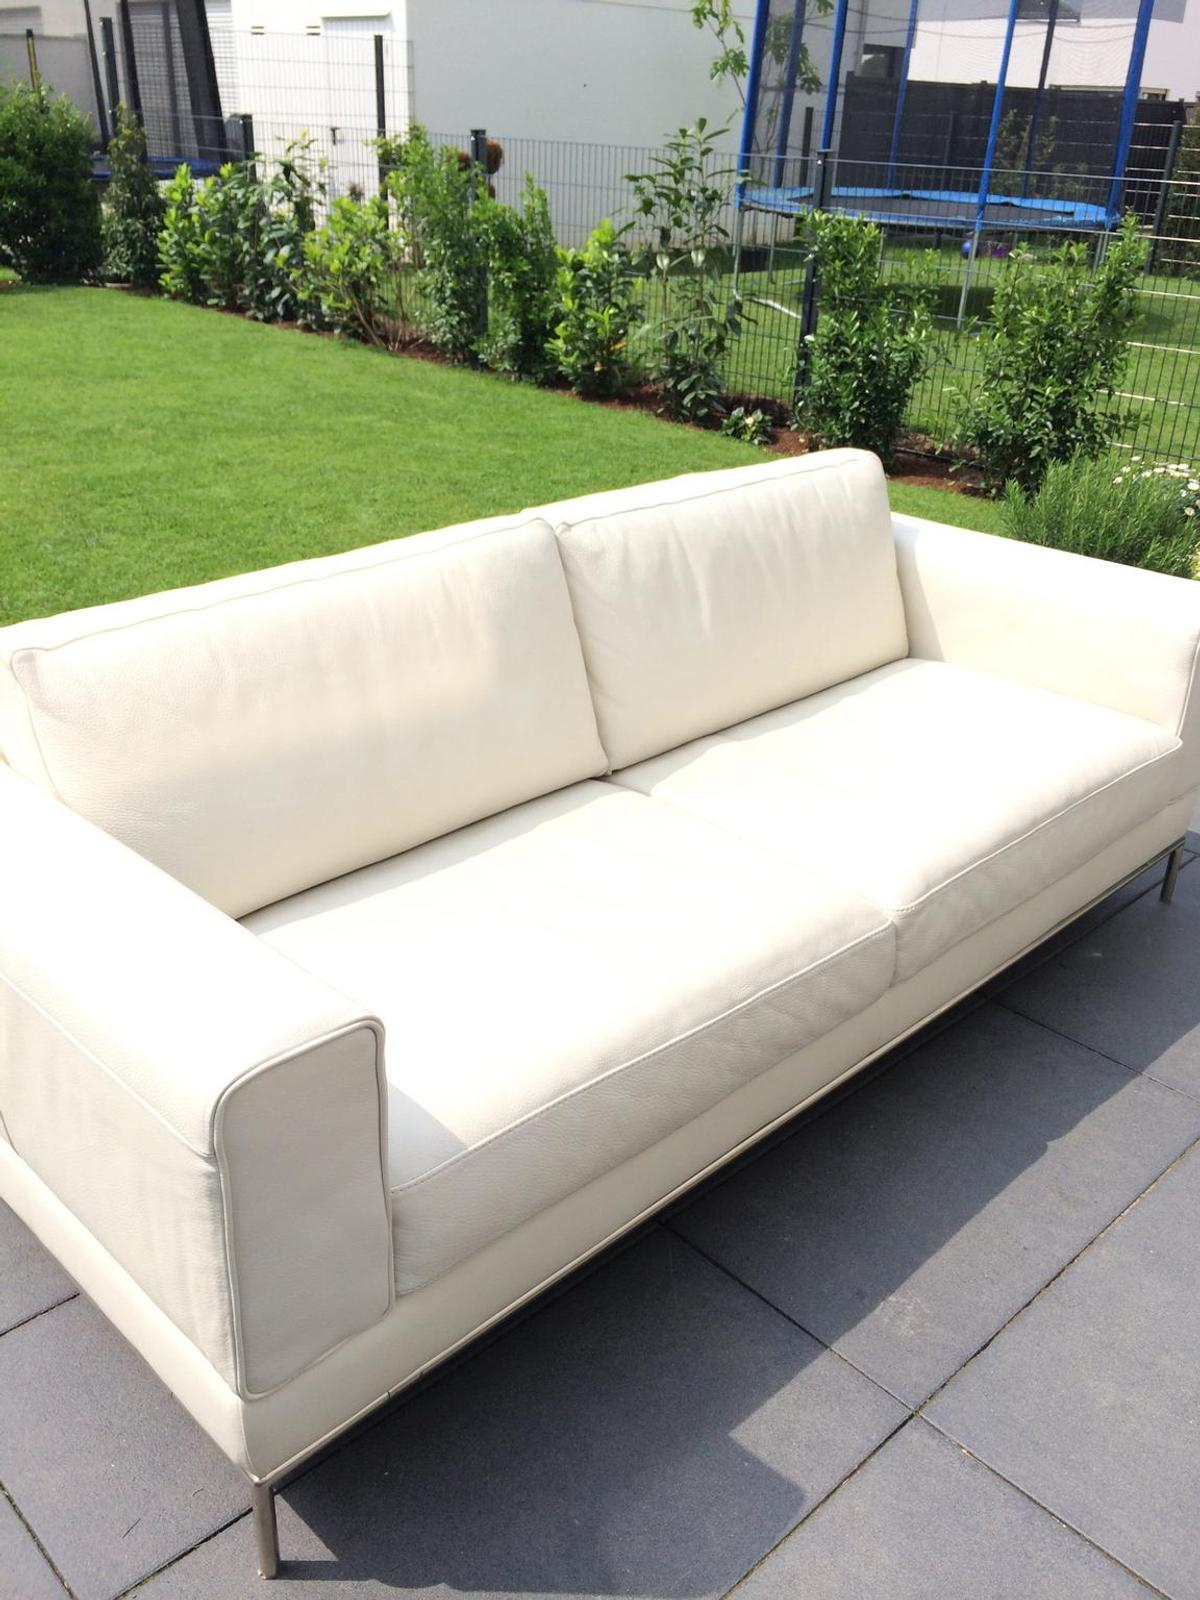 Ikea 3er Sofa Arild In 50859 Köln For 35000 For Sale Shpock